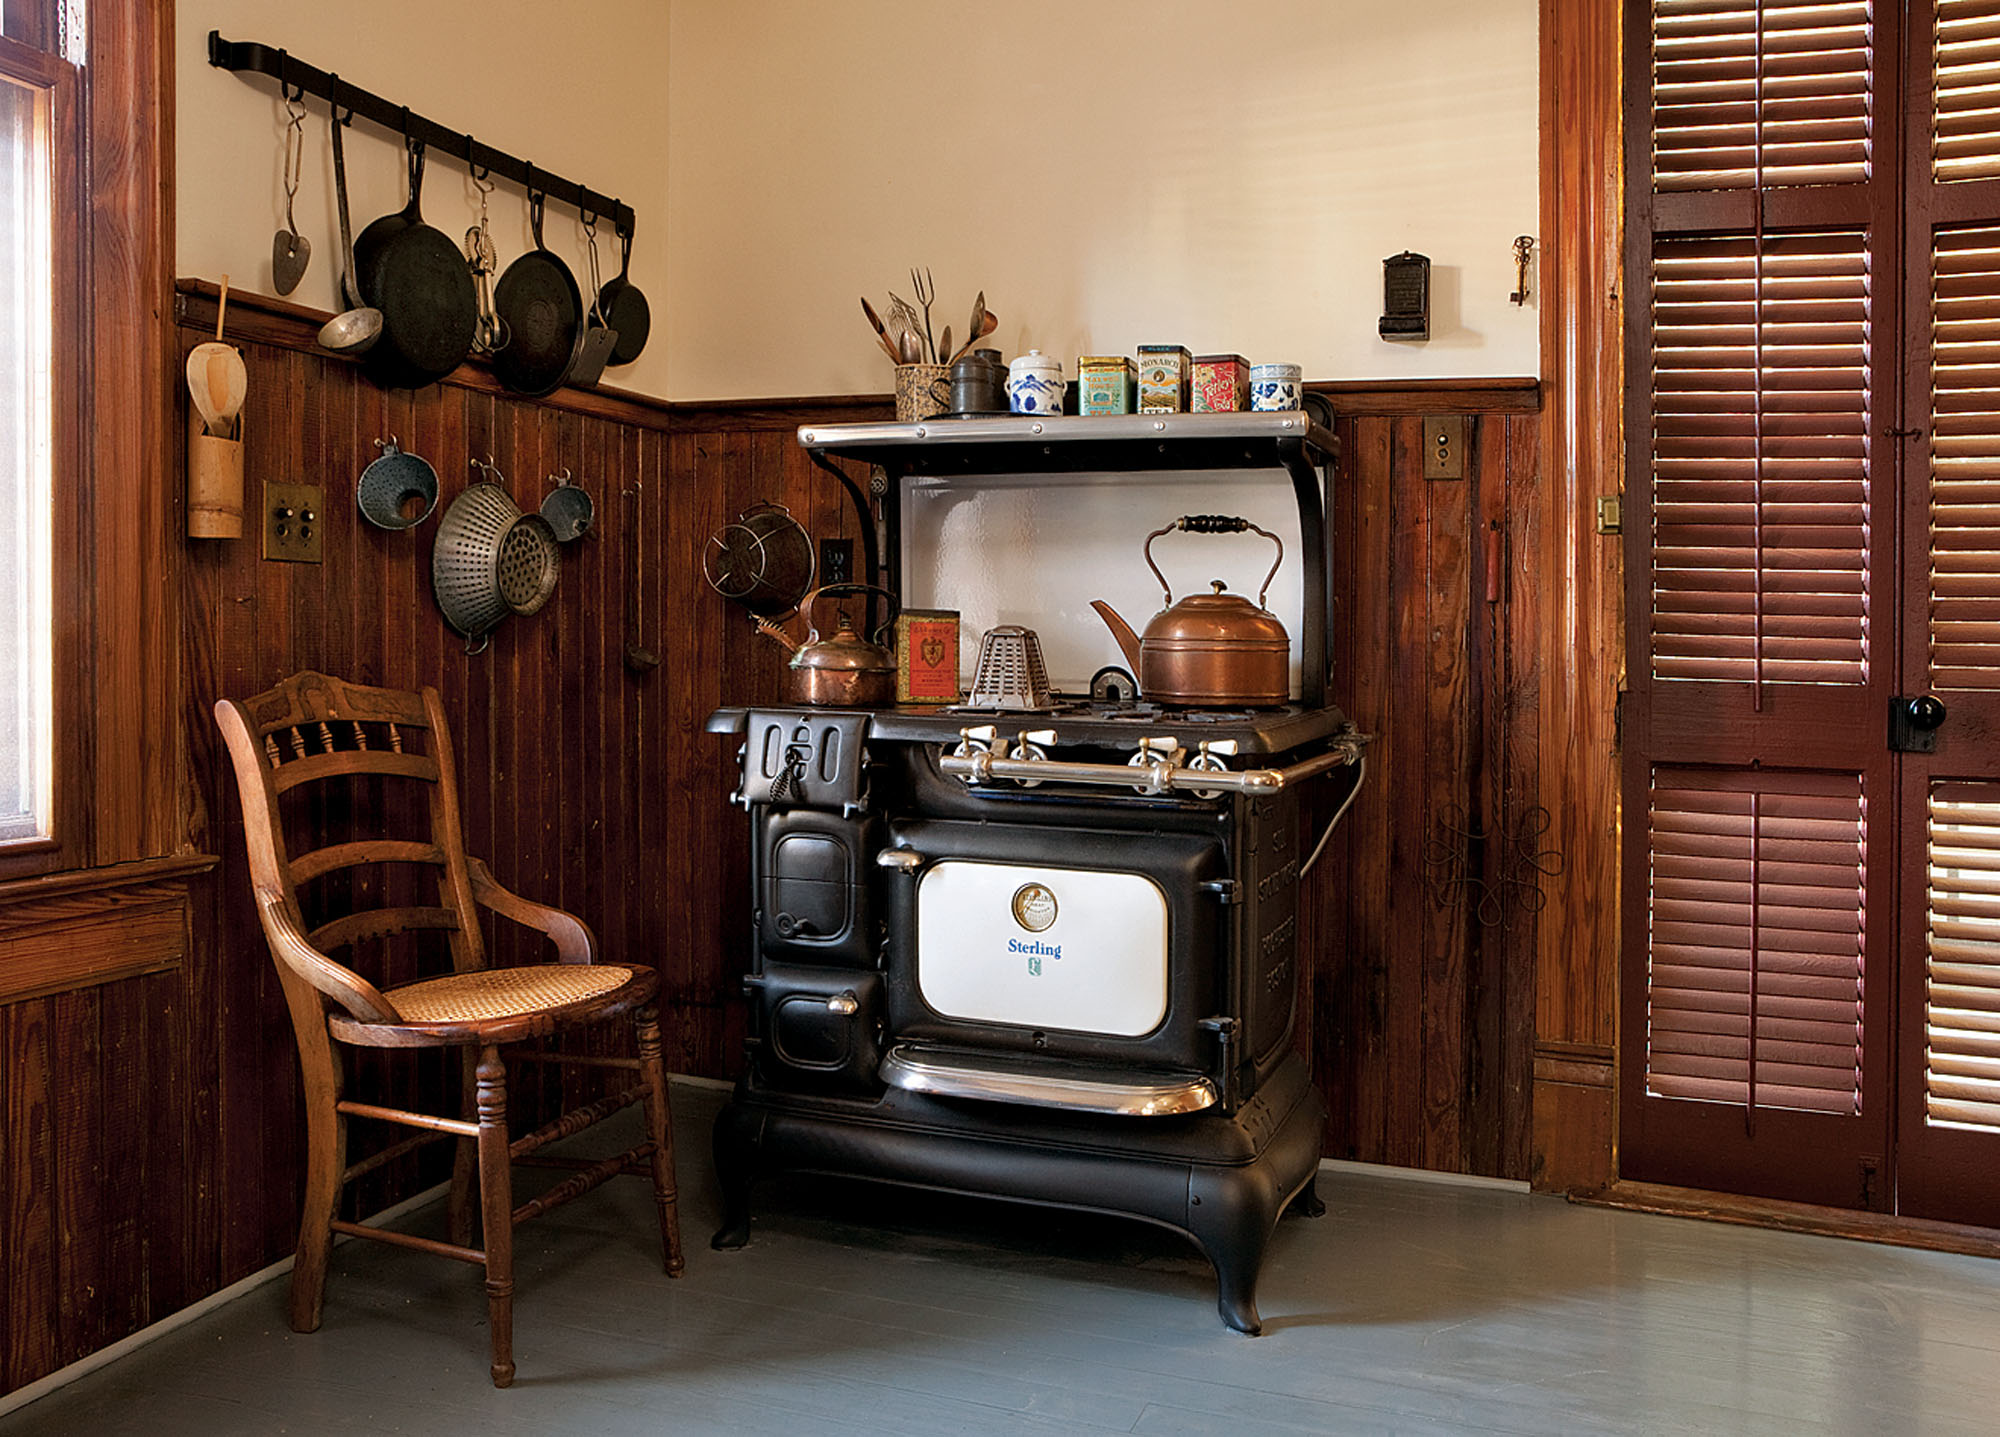 The History of Old Stoves